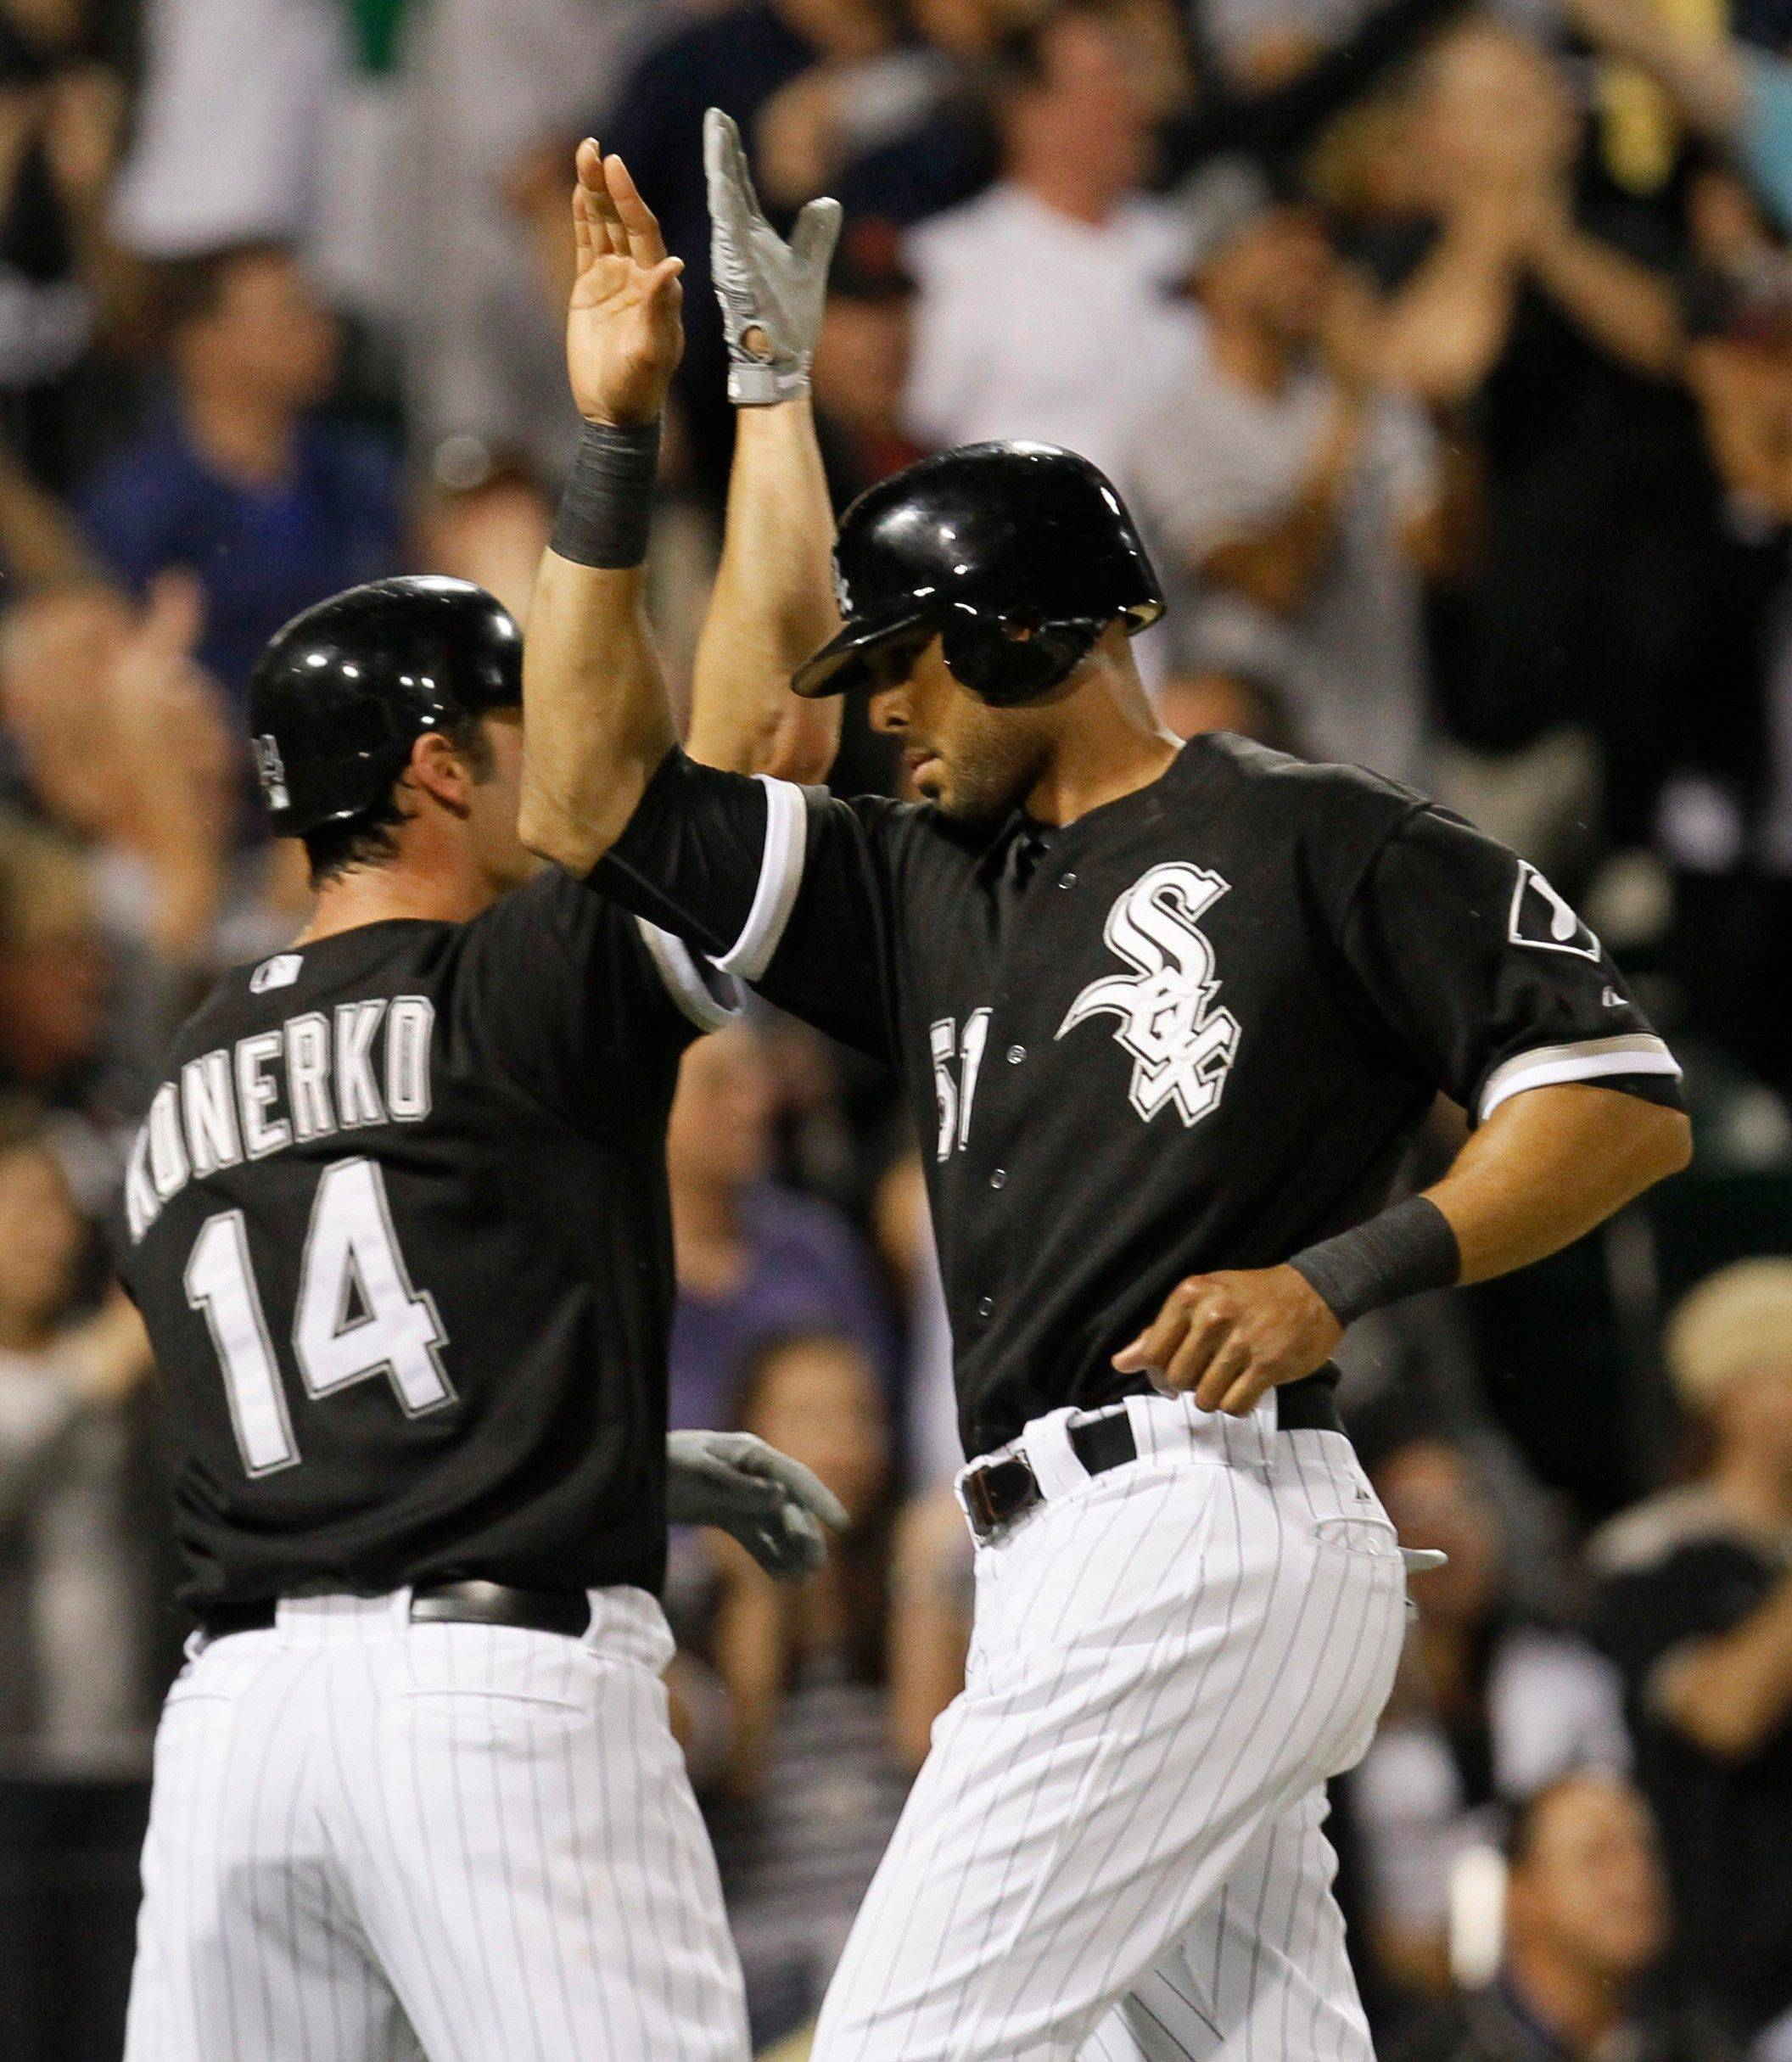 Paul Konerko, left, and Alex Rios celebrate after scoring on a throwing error by Minnesota Twins right fielder Michael Cuddyer off a ball hit by Alejandro De Aza Tuesday during the fifth inning.